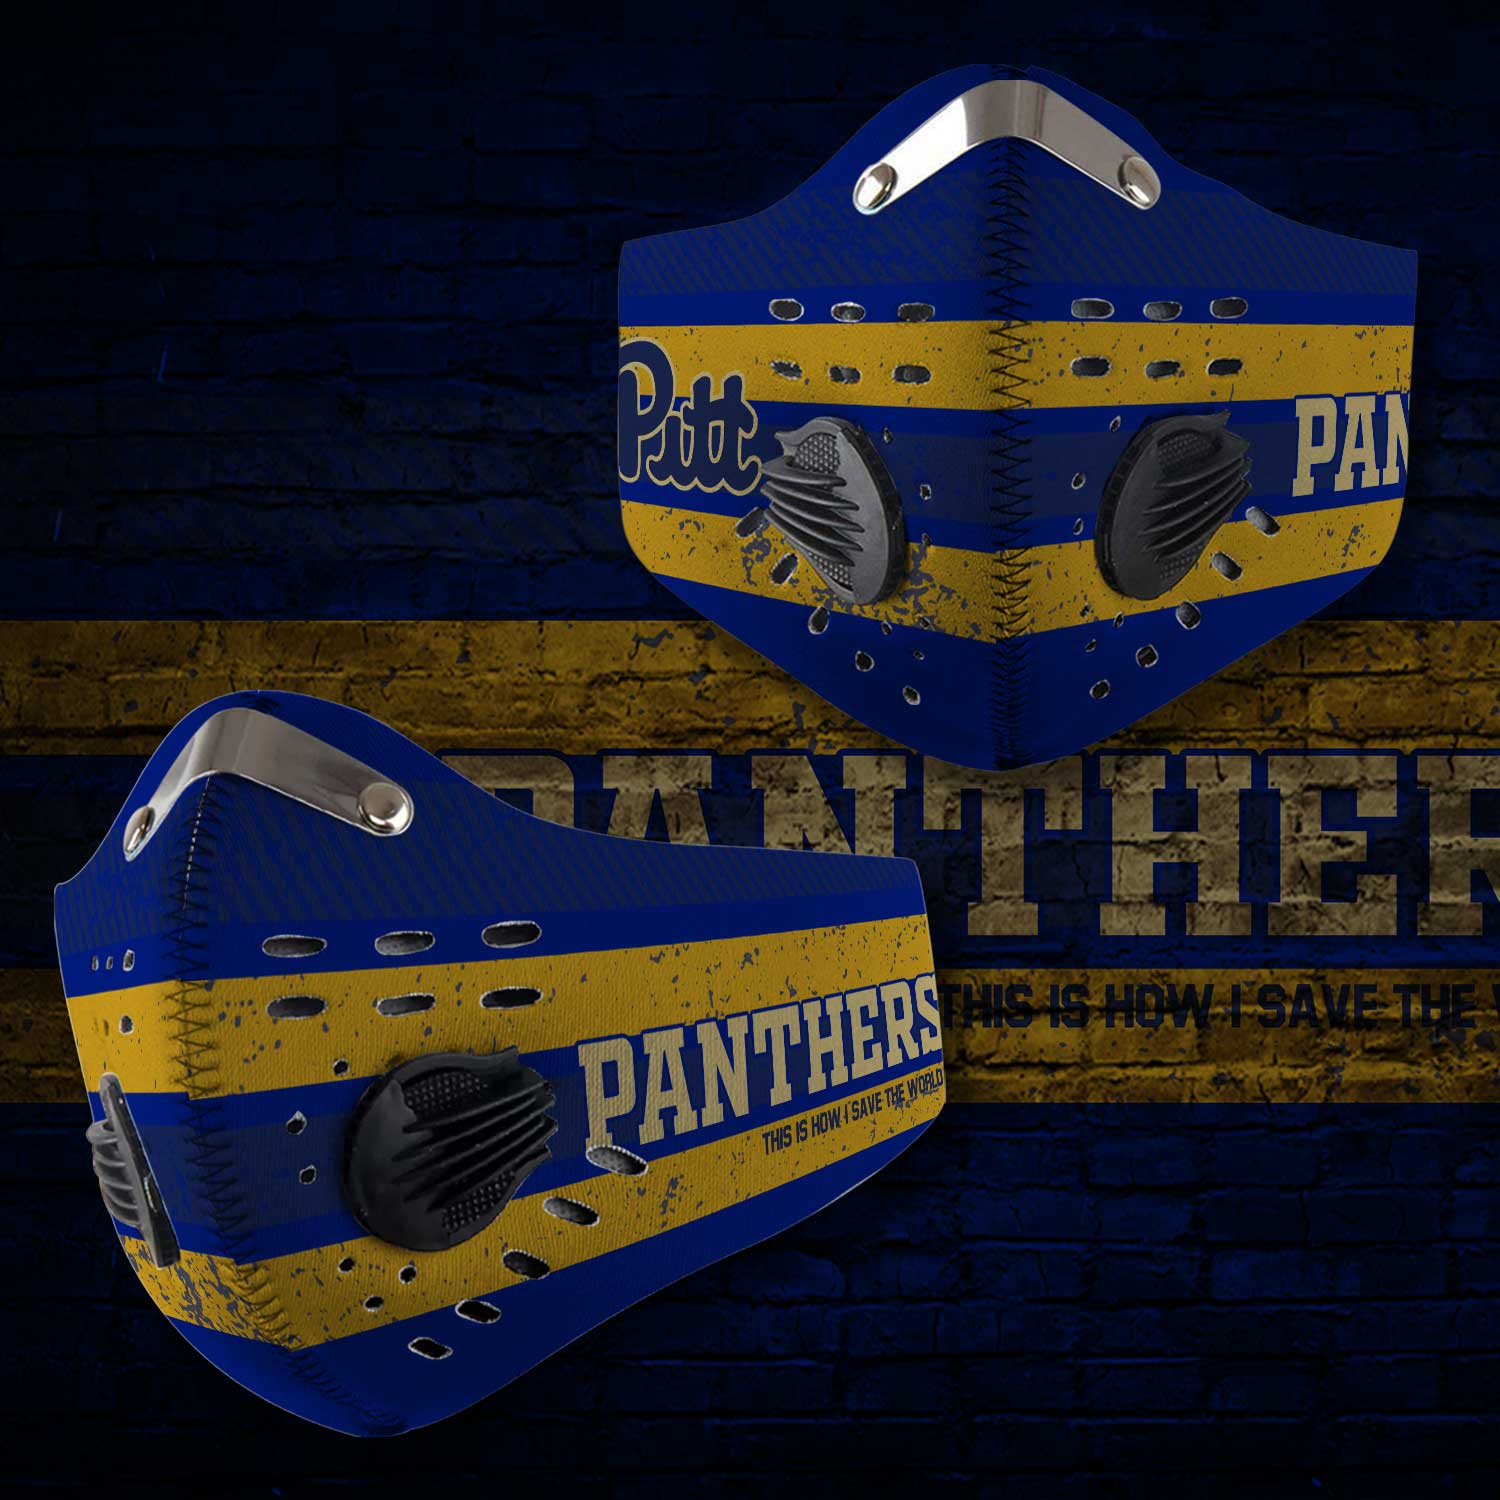 Pitt panthers this is how i save the world carbon filter face mask 1